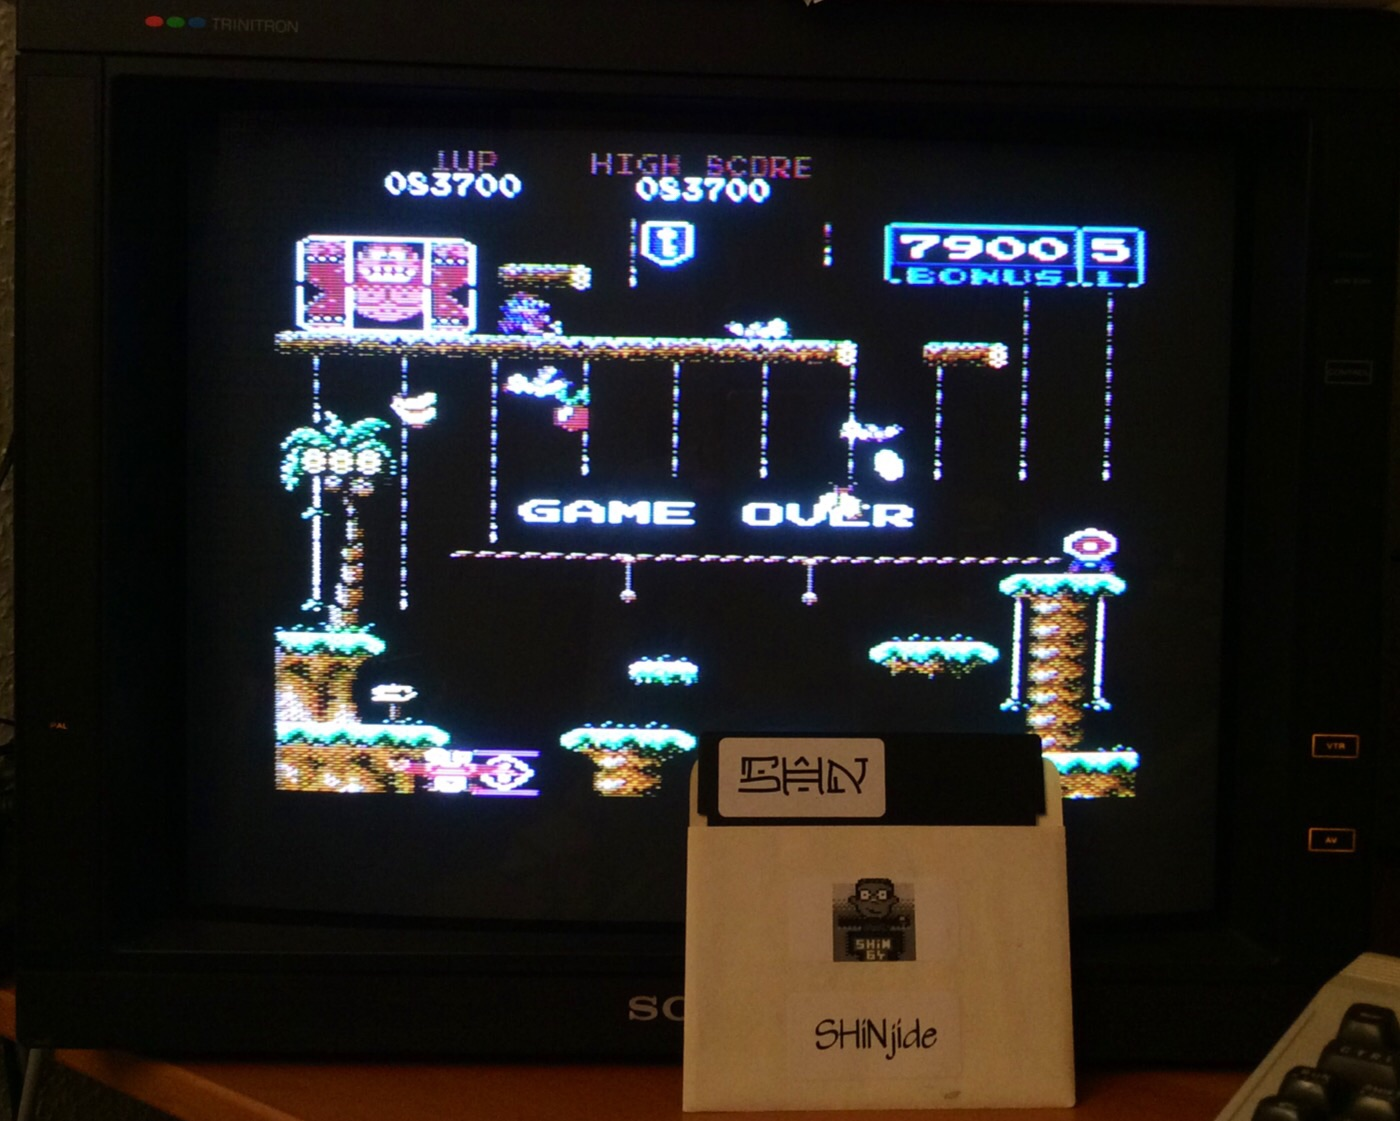 SHiNjide: Donkey Kong Junior: Advanced (Commodore 64) 83,700 points on 2014-12-15 15:58:31